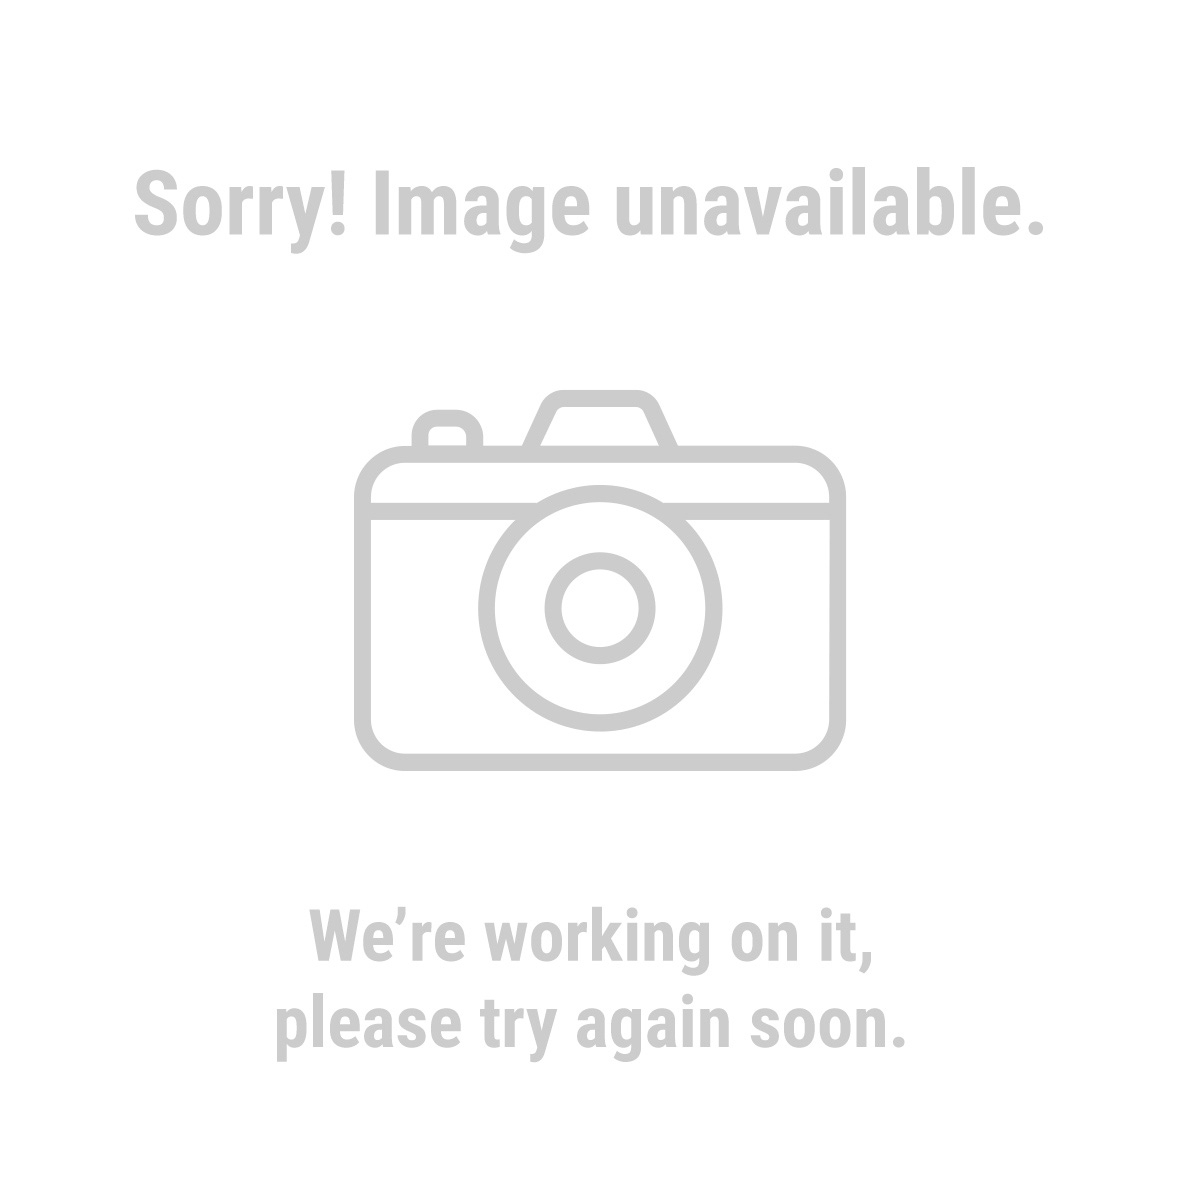 Pittsburgh 35407 60 Piece Alloy Steel SAE/Metric Tap and Die Set